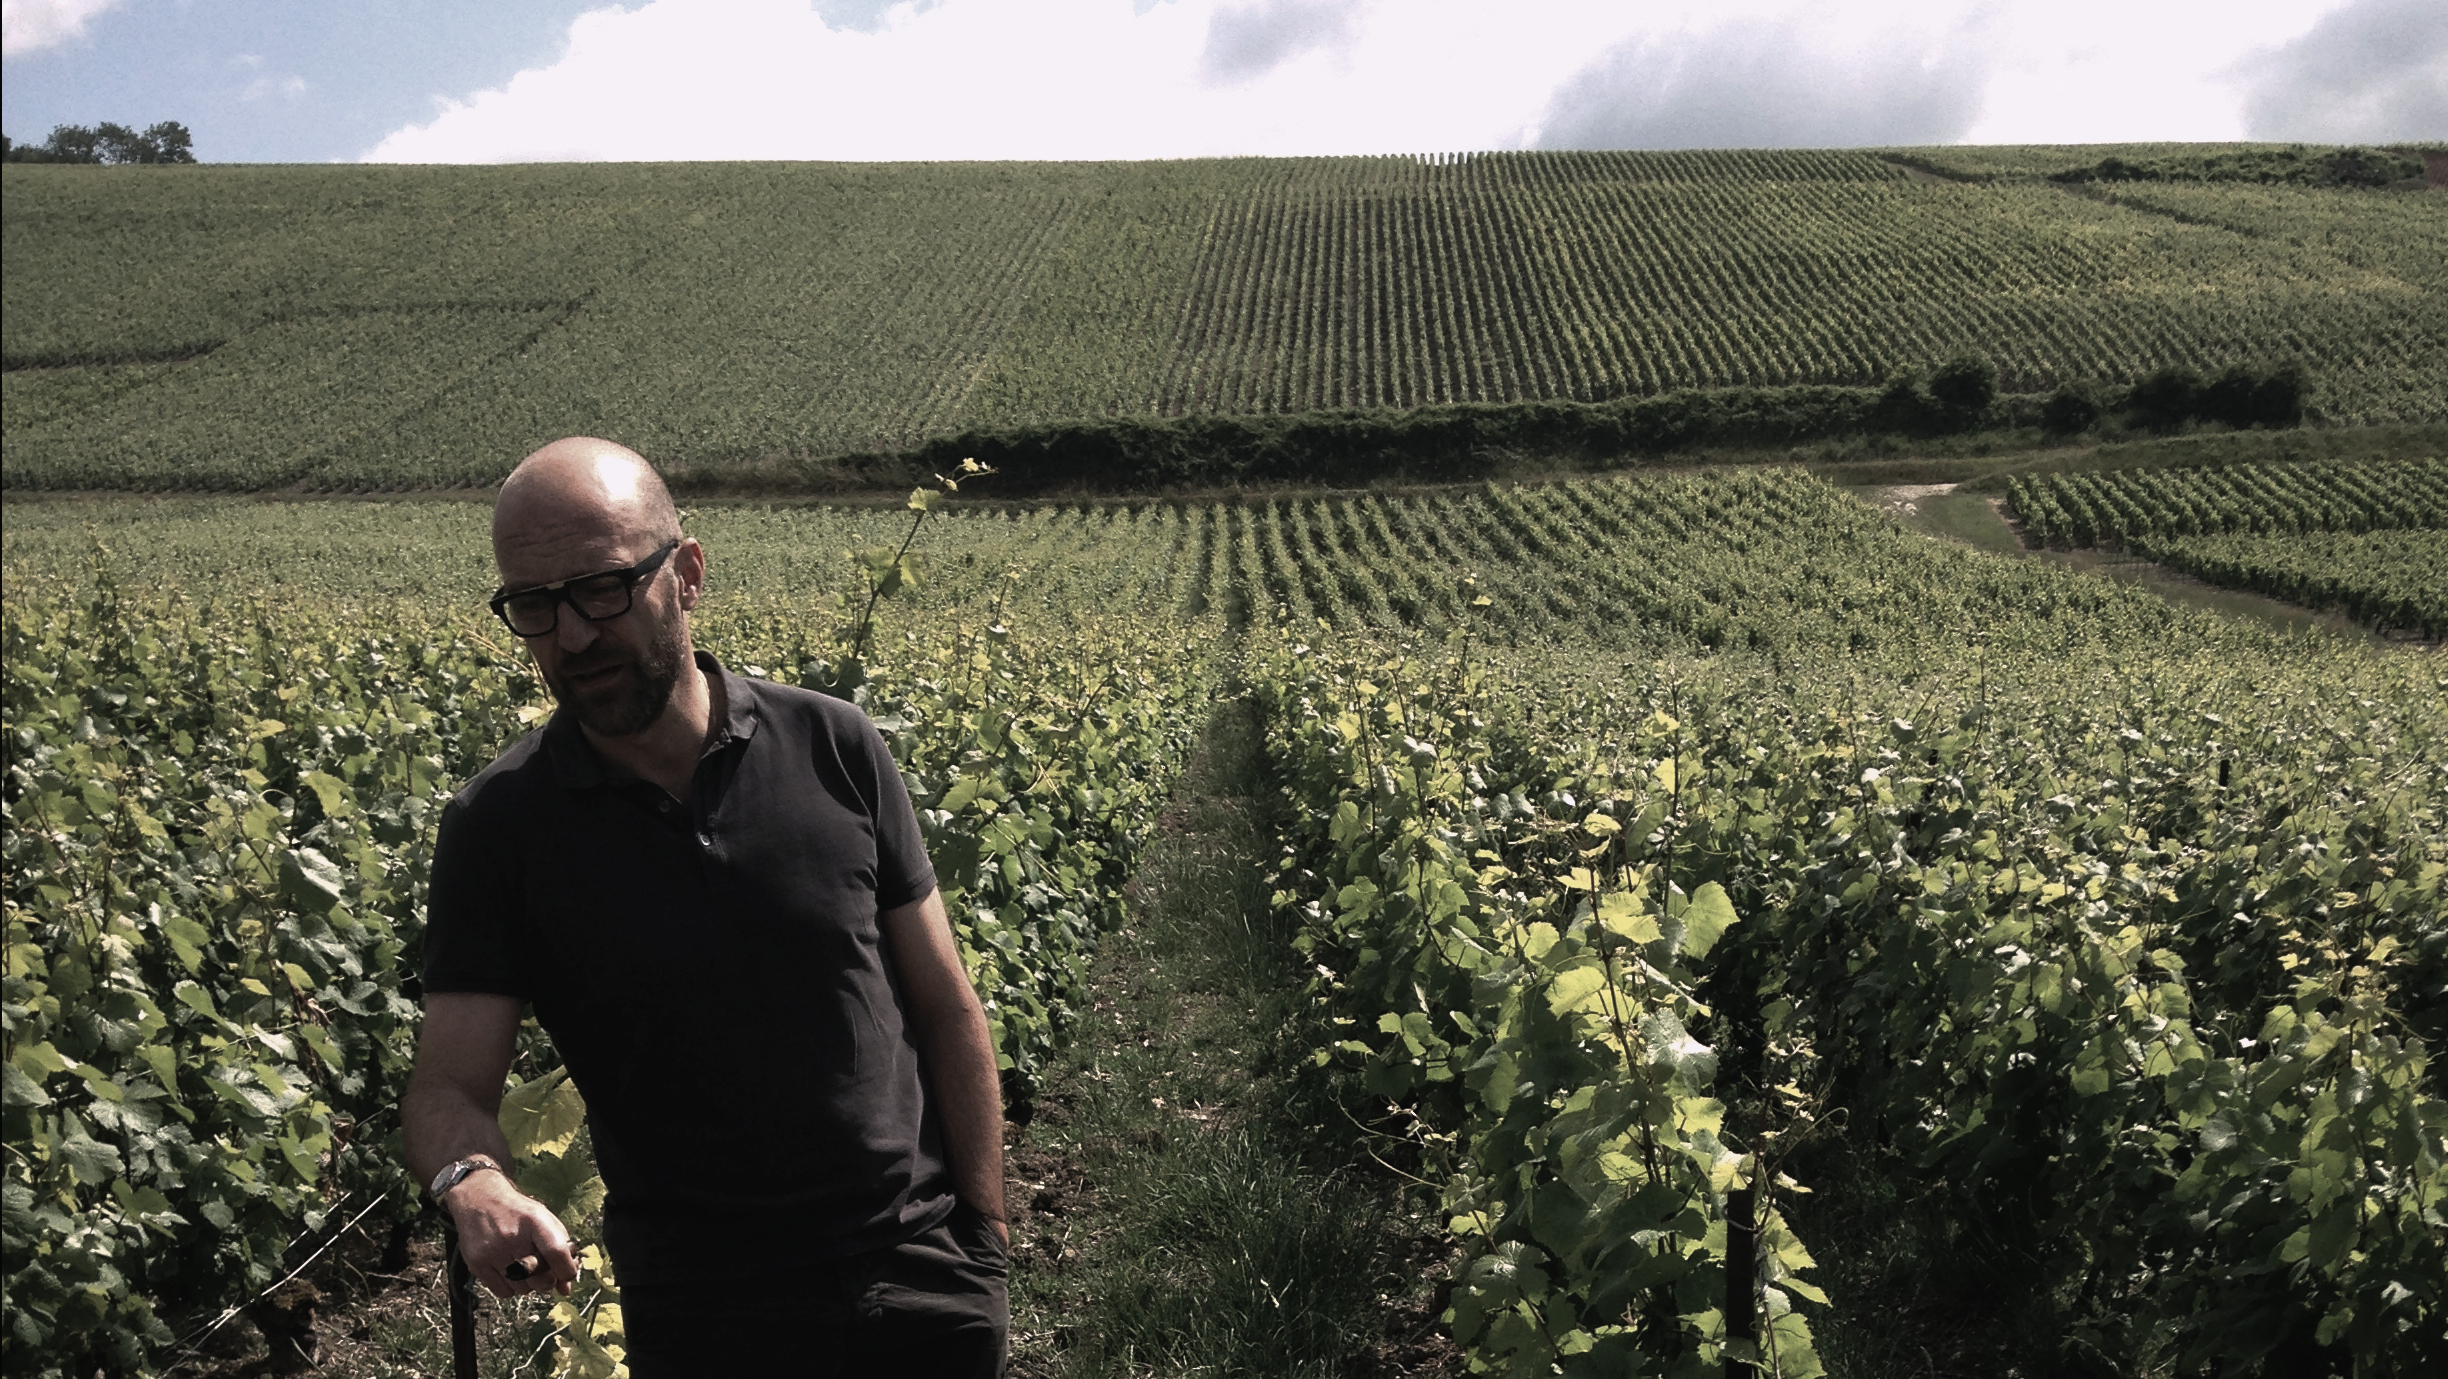 Our winemaker: Jérôme Dehours